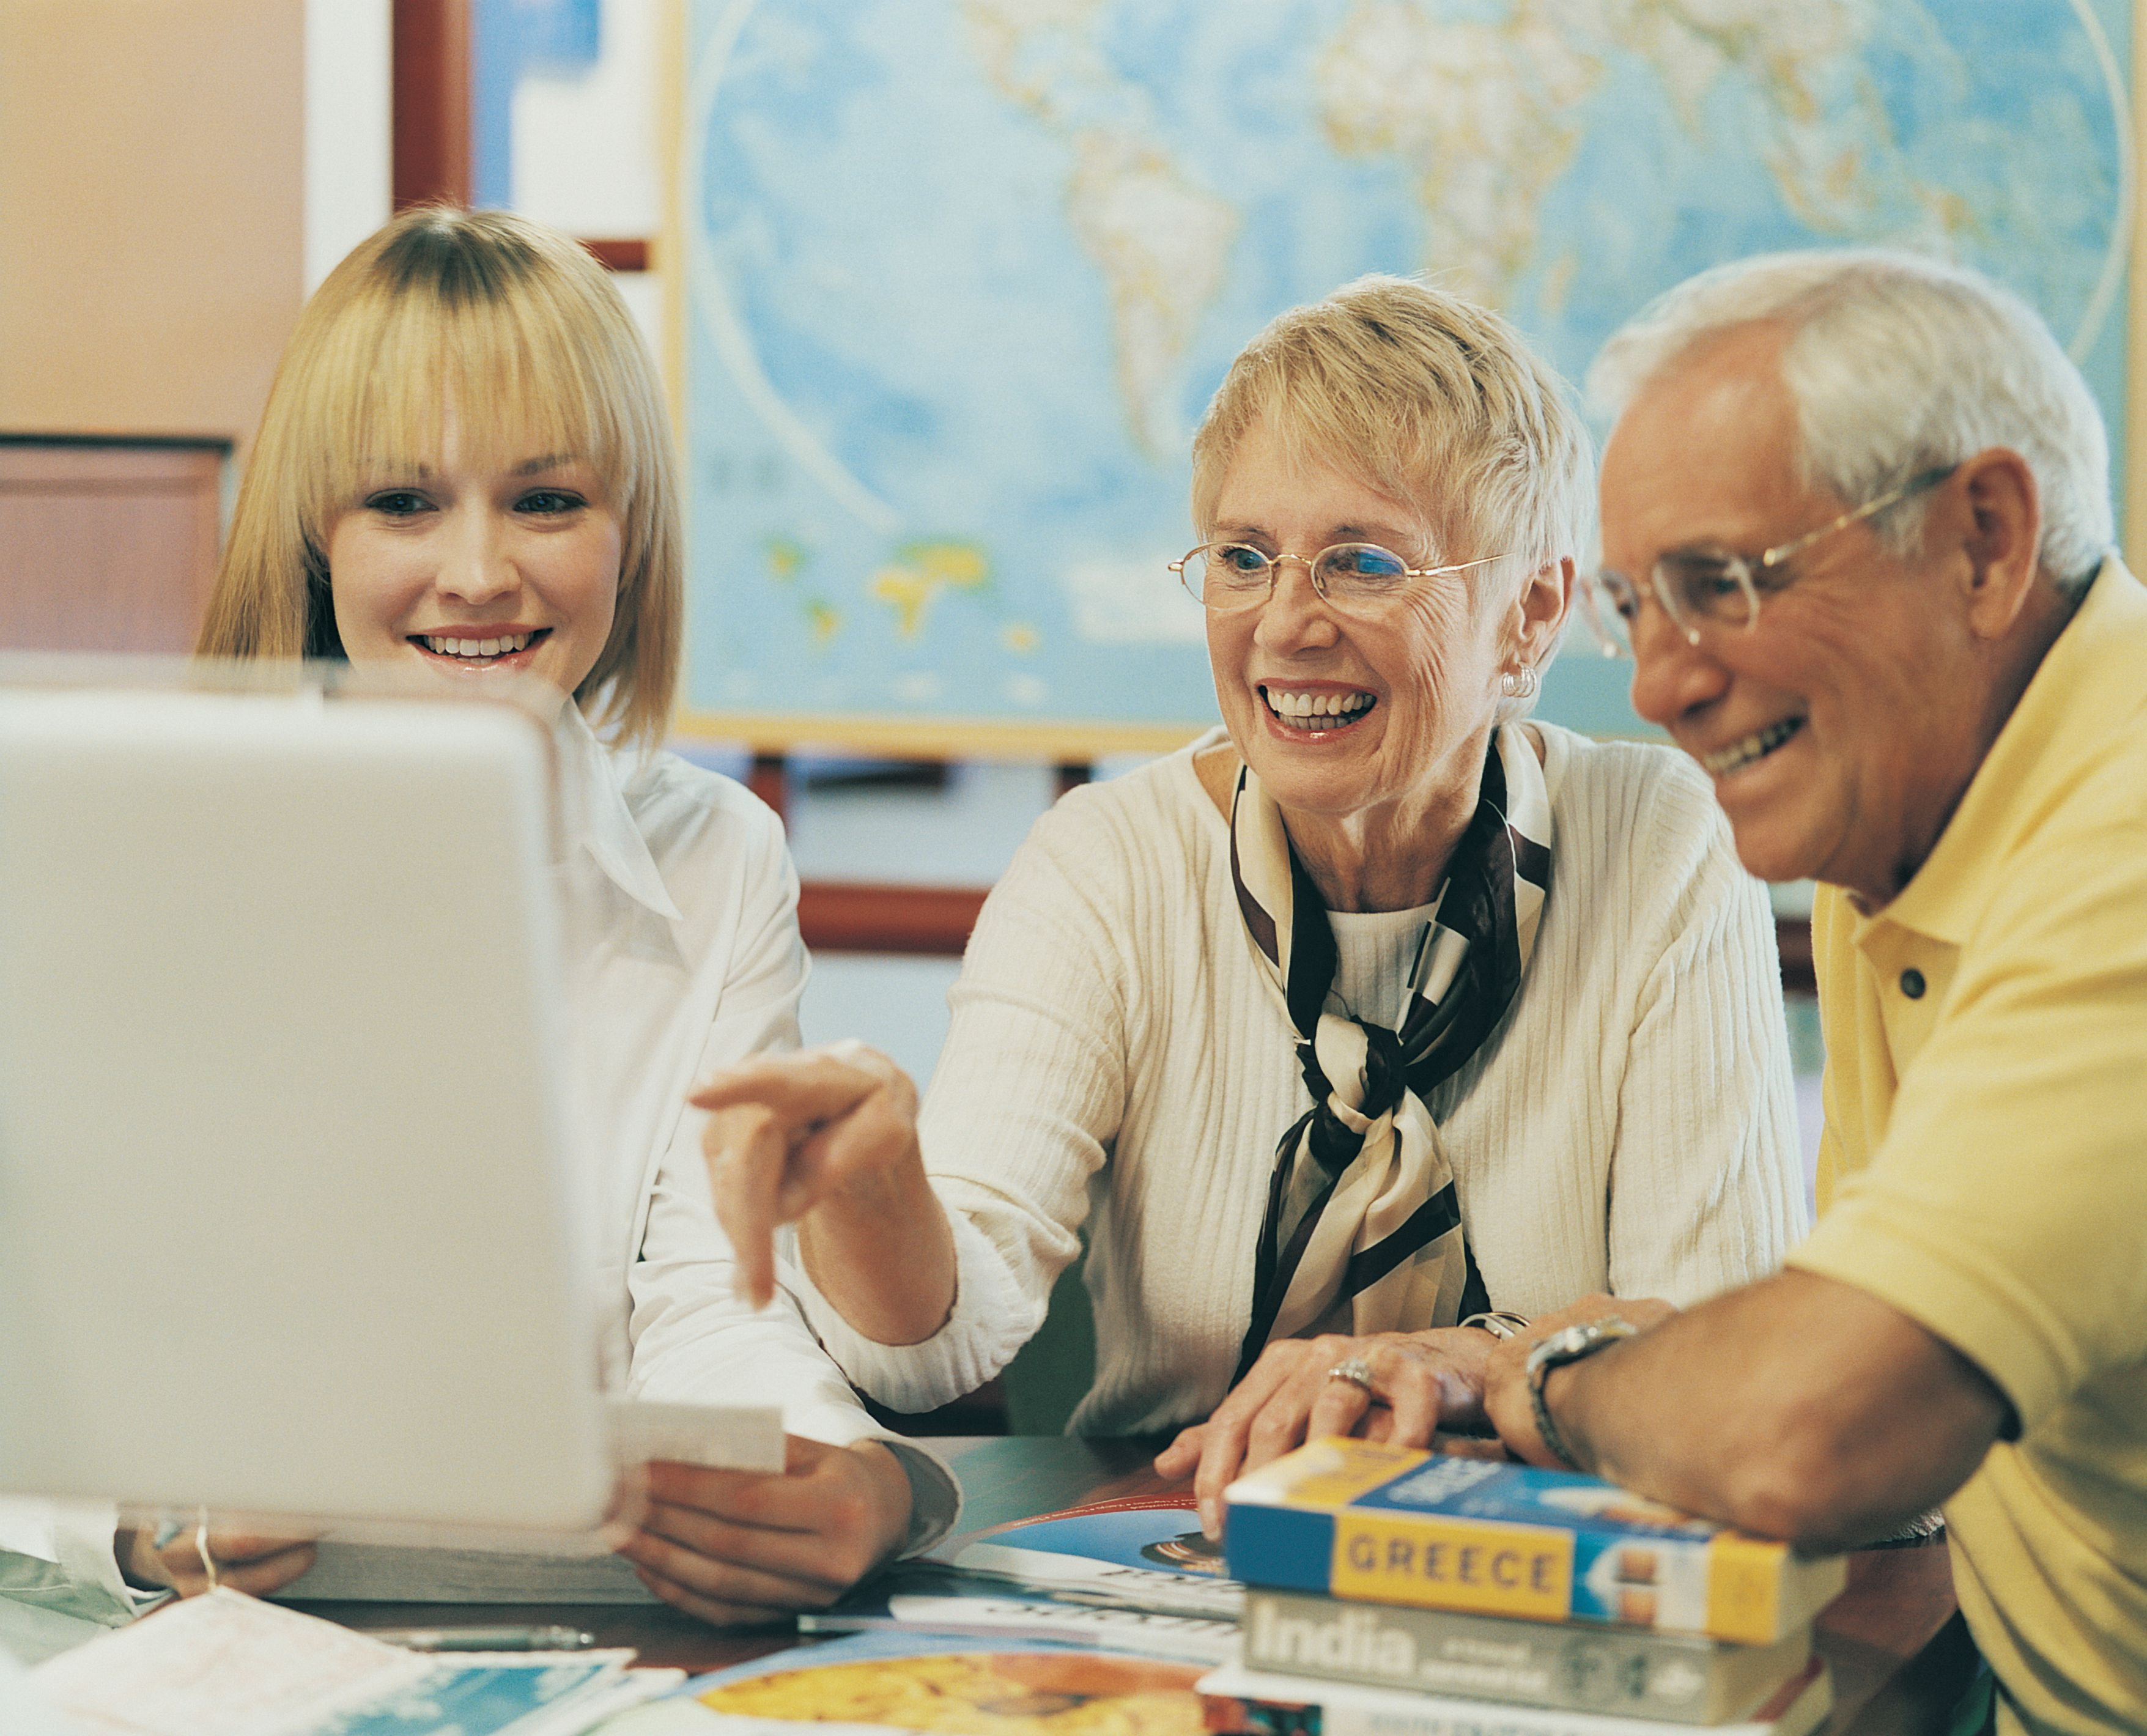 How to Find a Senior-Friendly Travel Agent